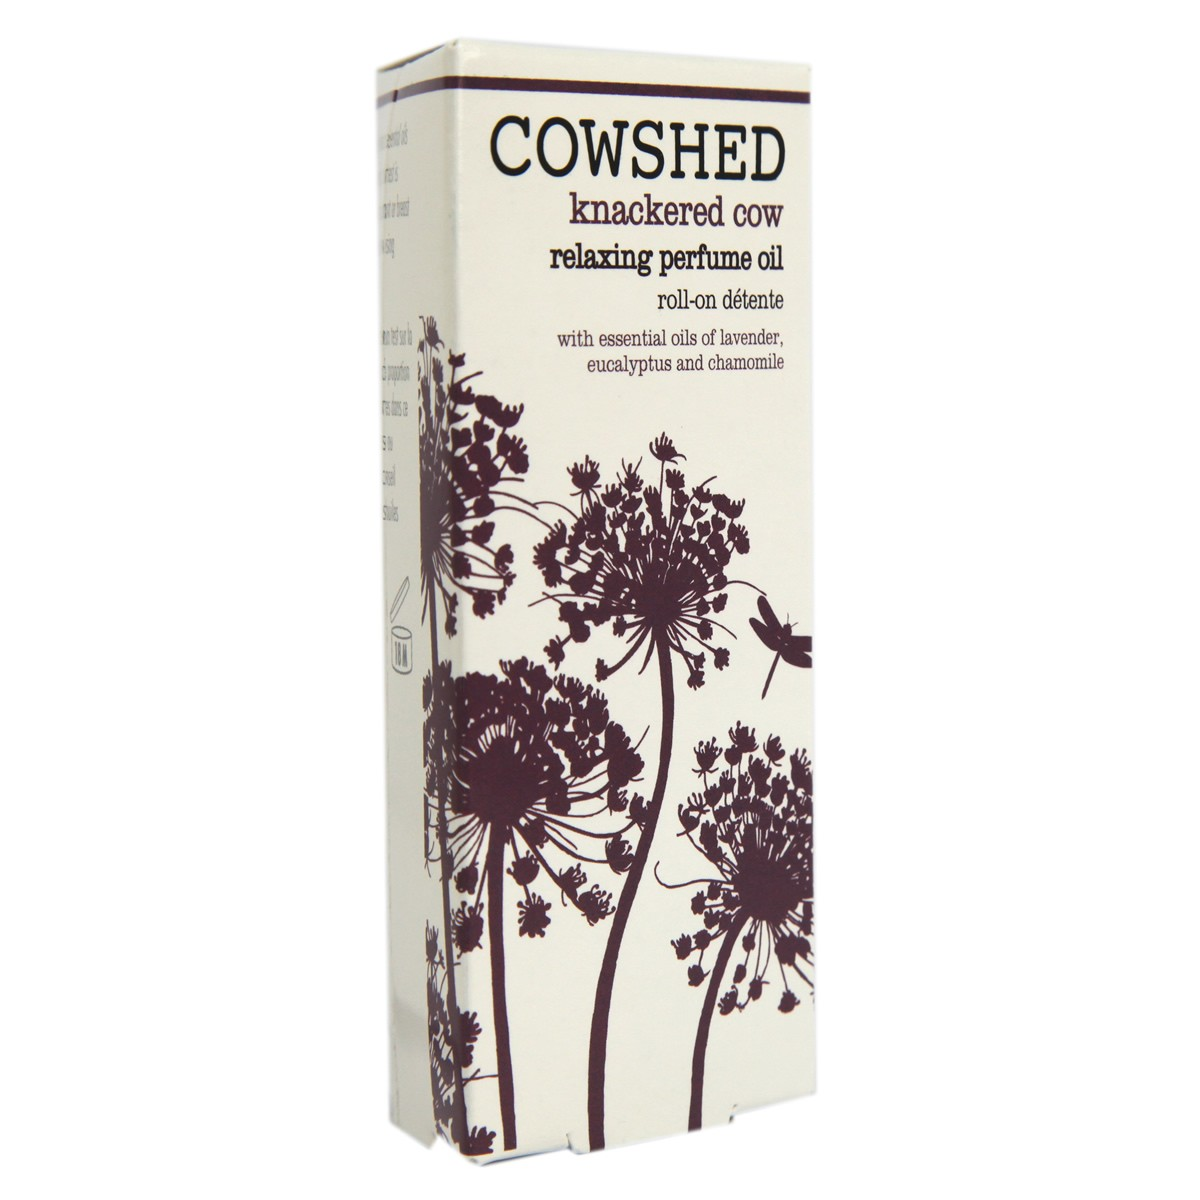 Cowshed Knackered Cow Relaxing Roll On Perfume Oil